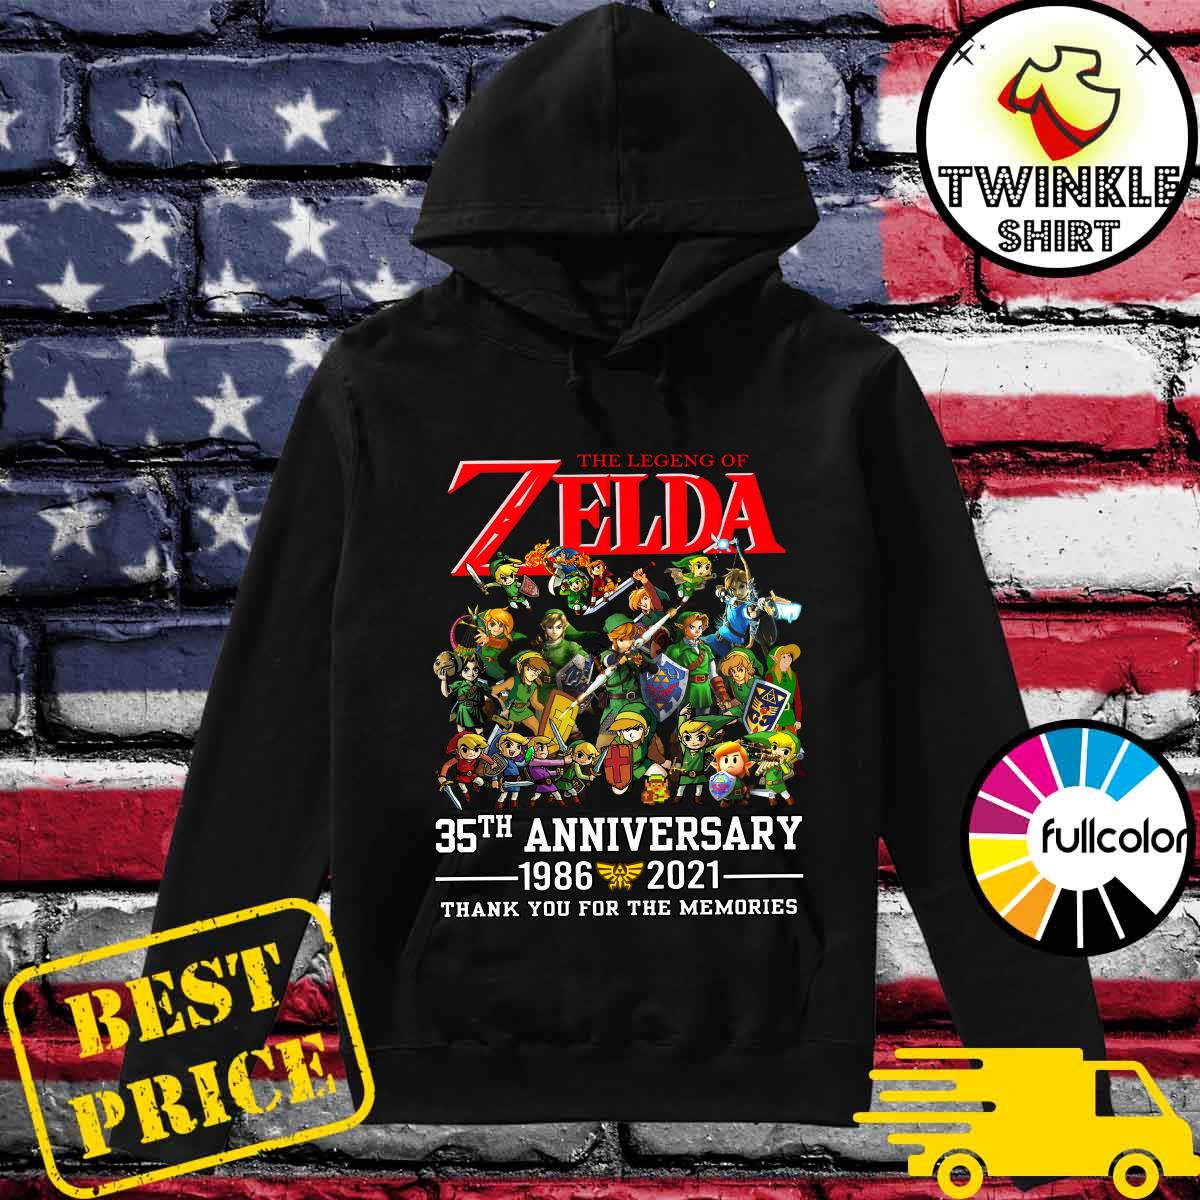 35th Anniversary 1986 2021 The Legend Of Zelda Thank You For The Memories Shirt Hoodie